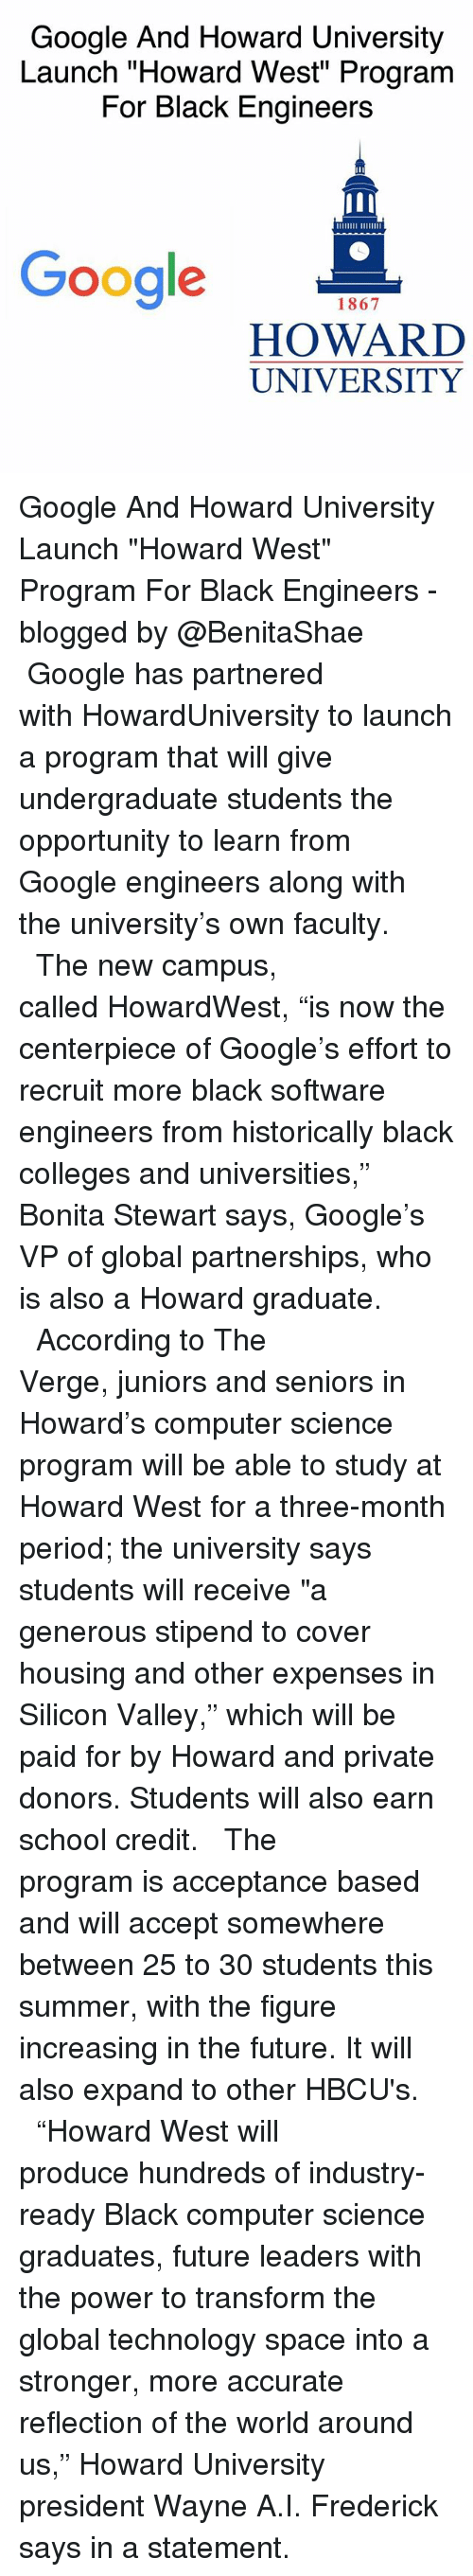 "Memes, 🤖, and Spaces: Google And Howard University  Launch ""Howard West"" Program  For Black Engineers  Google  1867  HOWARD  UNIVERSITY Google And Howard University Launch ""Howard West"" Program For Black Engineers -blogged by @BenitaShae ⠀⠀⠀⠀⠀⠀⠀⠀⠀ ⠀⠀⠀⠀⠀⠀⠀⠀⠀ Google has partnered with HowardUniversity to launch a program that will give undergraduate students the opportunity to learn from Google engineers along with the university's own faculty. ⠀⠀⠀⠀⠀⠀⠀⠀⠀ ⠀⠀⠀⠀⠀⠀⠀⠀⠀ The new campus, called HowardWest, ""is now the centerpiece of Google's effort to recruit more black software engineers from historically black colleges and universities,"" Bonita Stewart says, Google's VP of global partnerships, who is also a Howard graduate. ⠀⠀⠀⠀⠀⠀⠀⠀⠀ ⠀⠀⠀⠀⠀⠀⠀⠀⠀ According to The Verge, juniors and seniors in Howard's computer science program will be able to study at Howard West for a three-month period; the university says students will receive ""a generous stipend to cover housing and other expenses in Silicon Valley,"" which will be paid for by Howard and private donors. Students will also earn school credit. ⠀⠀⠀⠀⠀⠀⠀⠀⠀ ⠀⠀⠀⠀⠀⠀⠀⠀⠀ The program is acceptance based and will accept somewhere between 25 to 30 students this summer, with the figure increasing in the future. It will also expand to other HBCU's. ⠀⠀⠀⠀⠀⠀⠀⠀⠀ ⠀⠀⠀⠀⠀⠀⠀⠀⠀ ""Howard West will produce hundreds of industry-ready Black computer science graduates, future leaders with the power to transform the global technology space into a stronger, more accurate reflection of the world around us,"" Howard University president Wayne A.I. Frederick says in a statement."